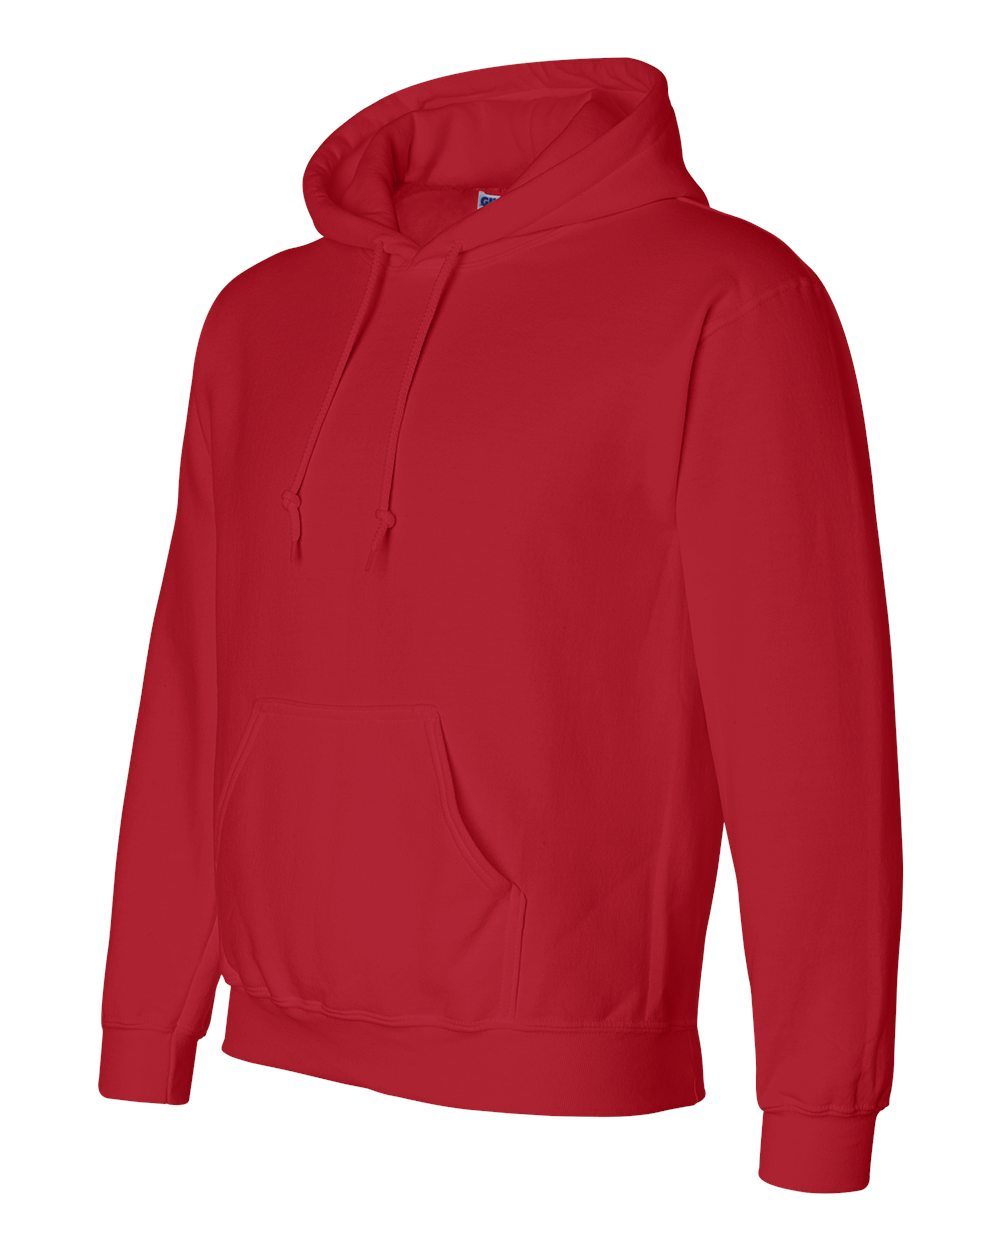 Gildan Ultra Blend Hooded sweater GIL12500 Red